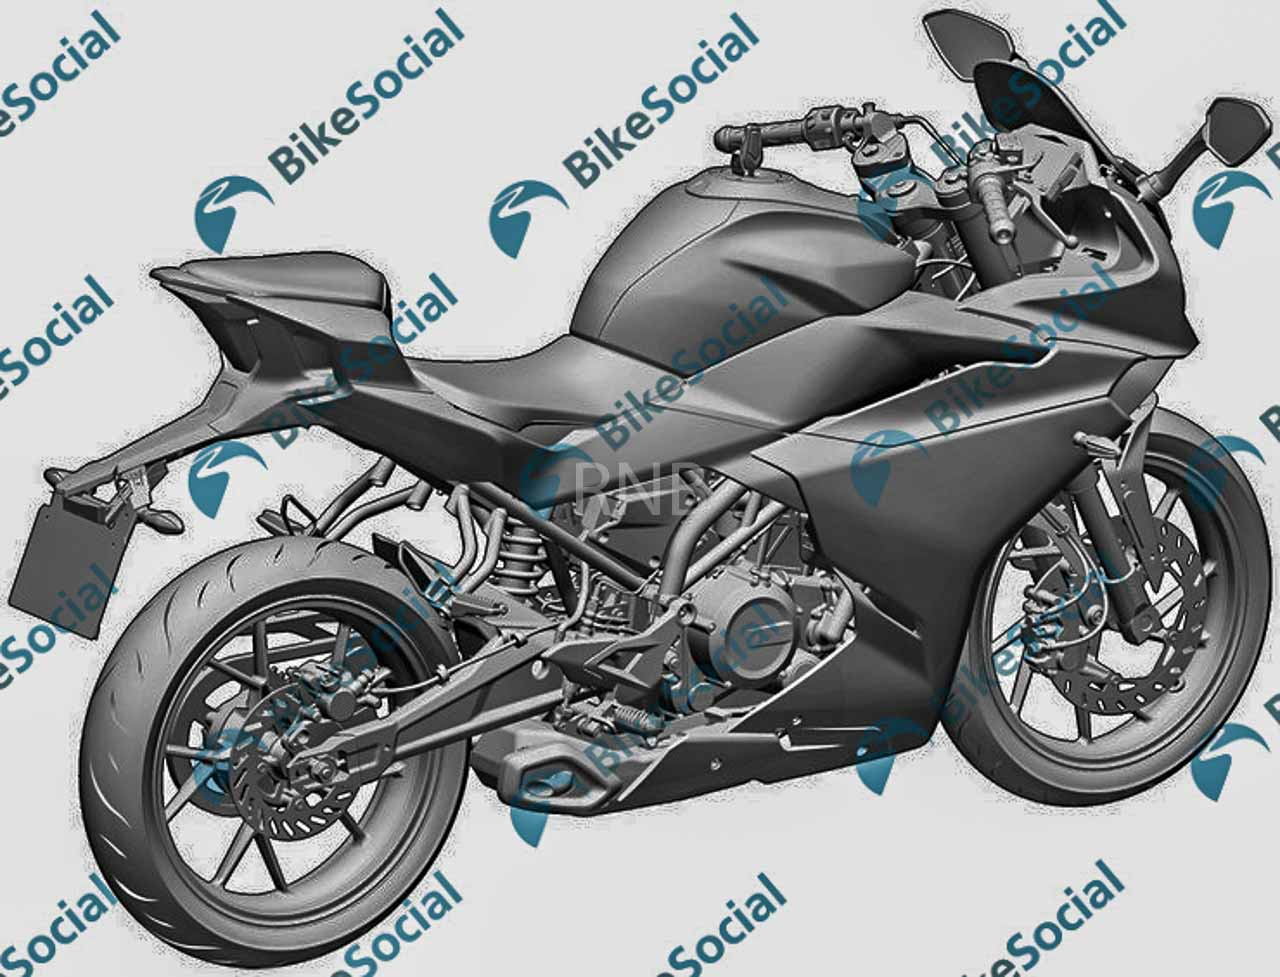 CF Moto 300SR fully faired motorcycle